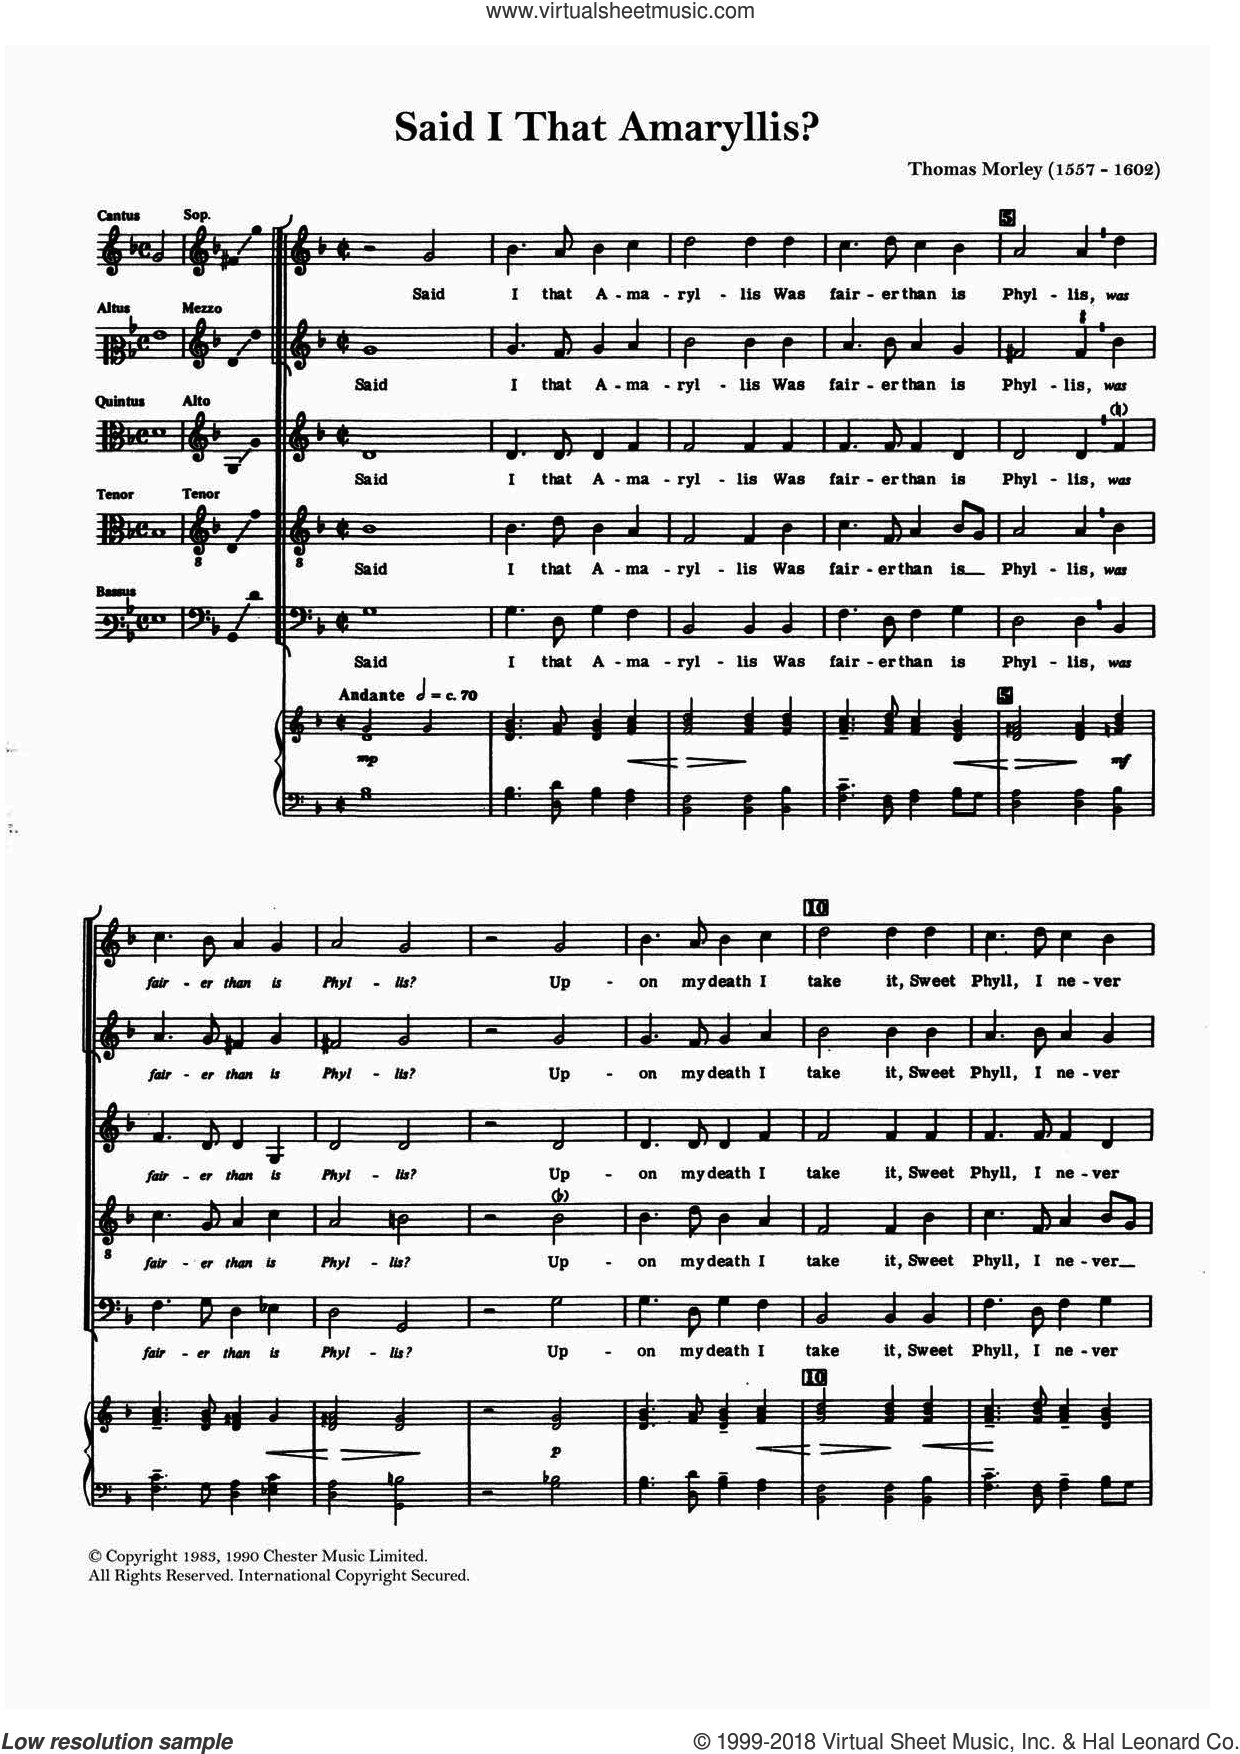 Said I That Amaryllis? sheet music for choir by Thomas Morley. Score Image Preview.